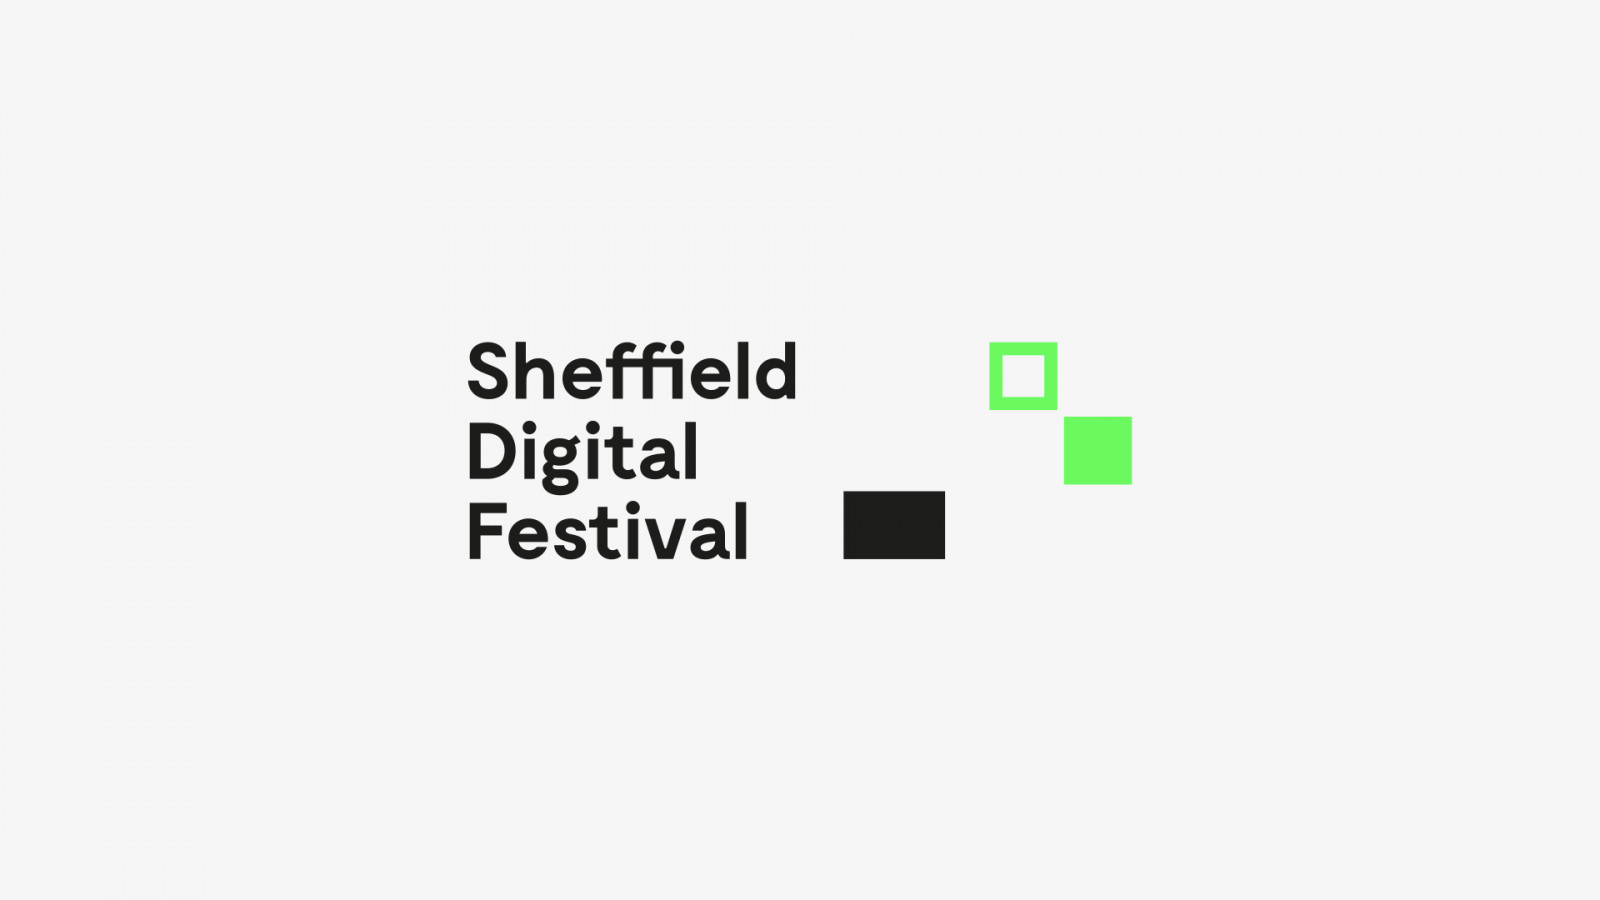 Sheffield Digital Festival thumbnail - Thumbnail image for Sheffield Digital Festival thumbnail project